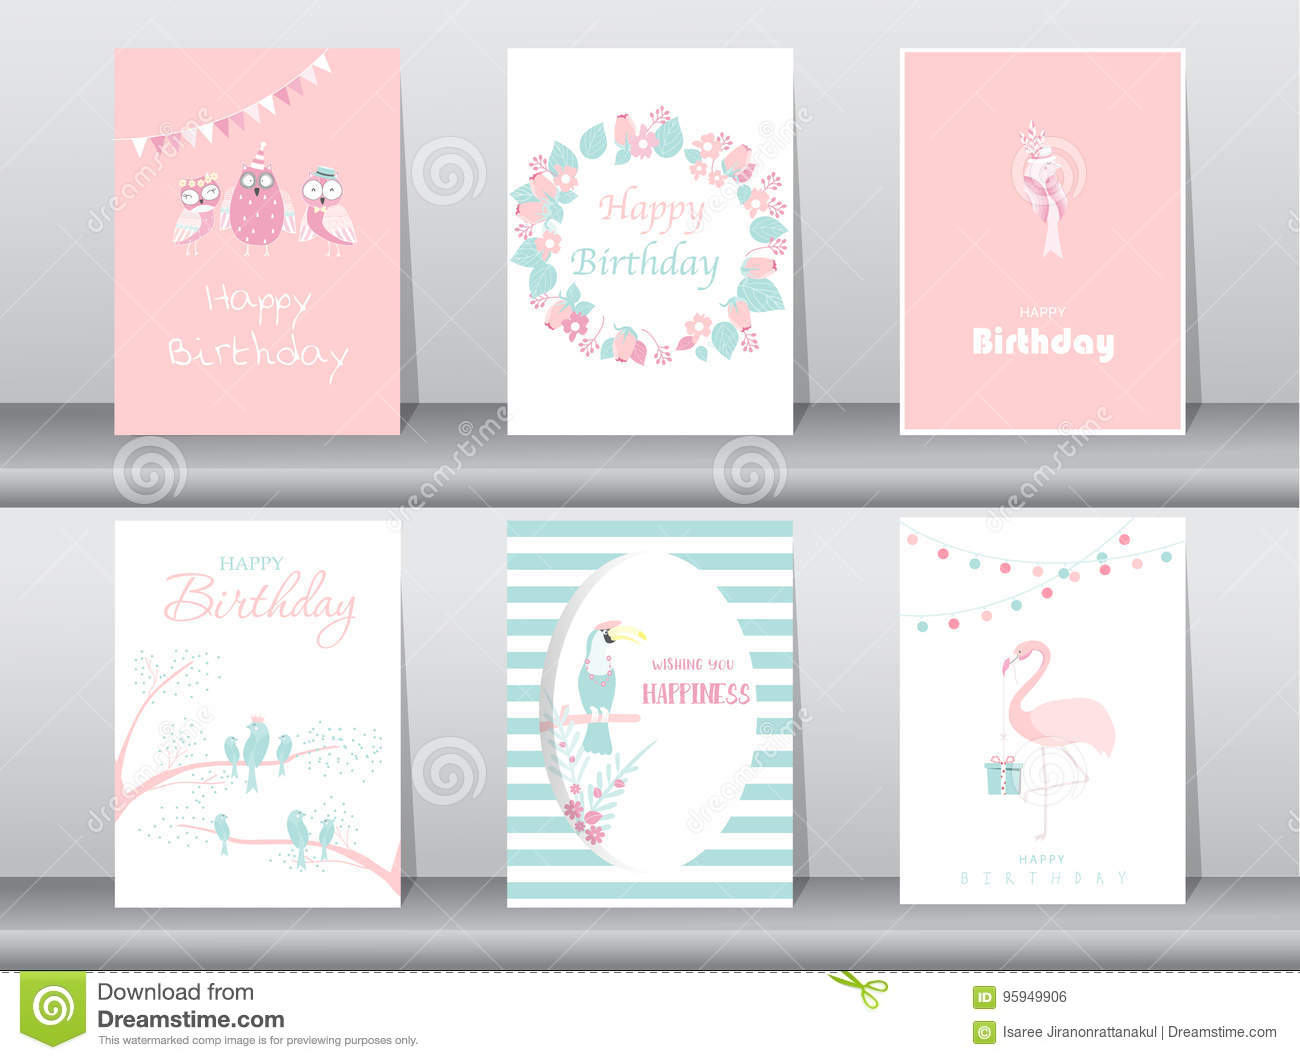 Set of birthday invitations cards,poster,greeting,template,bird,owl,flamingo,Vector illustrations